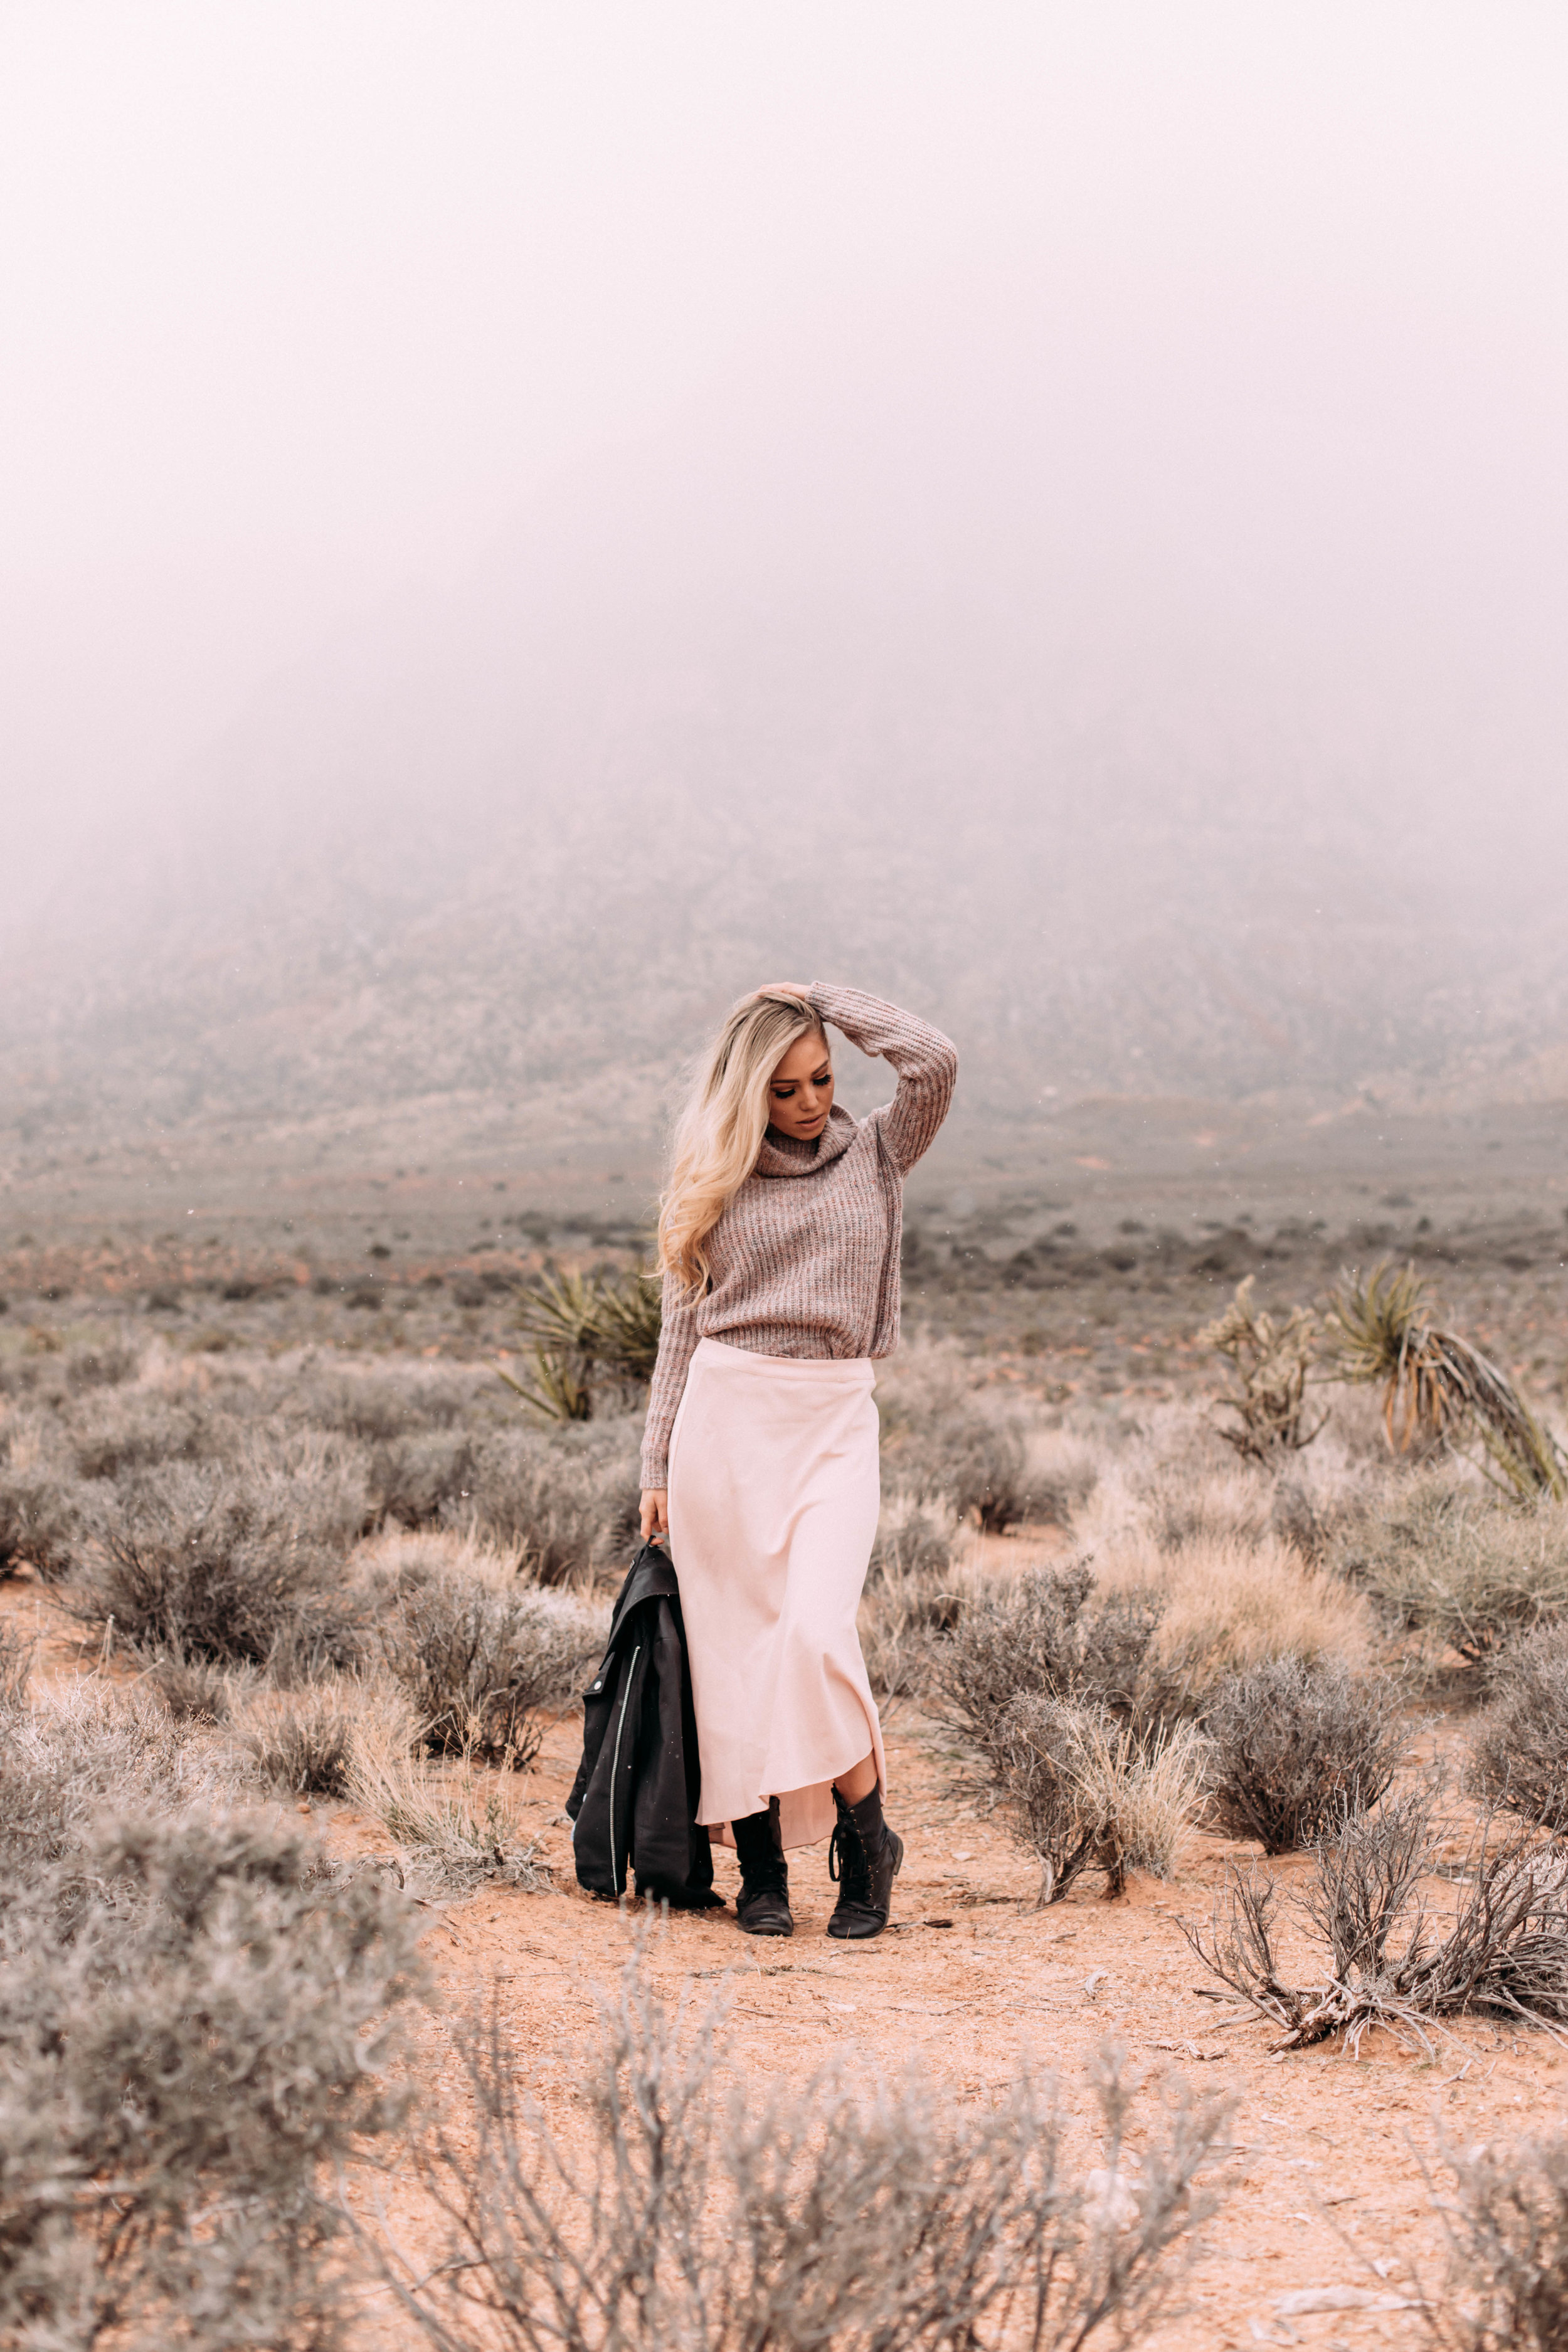 Rebekah Long | Ashlyn Savannah Photo | Las Vegas, NV-5.jpg